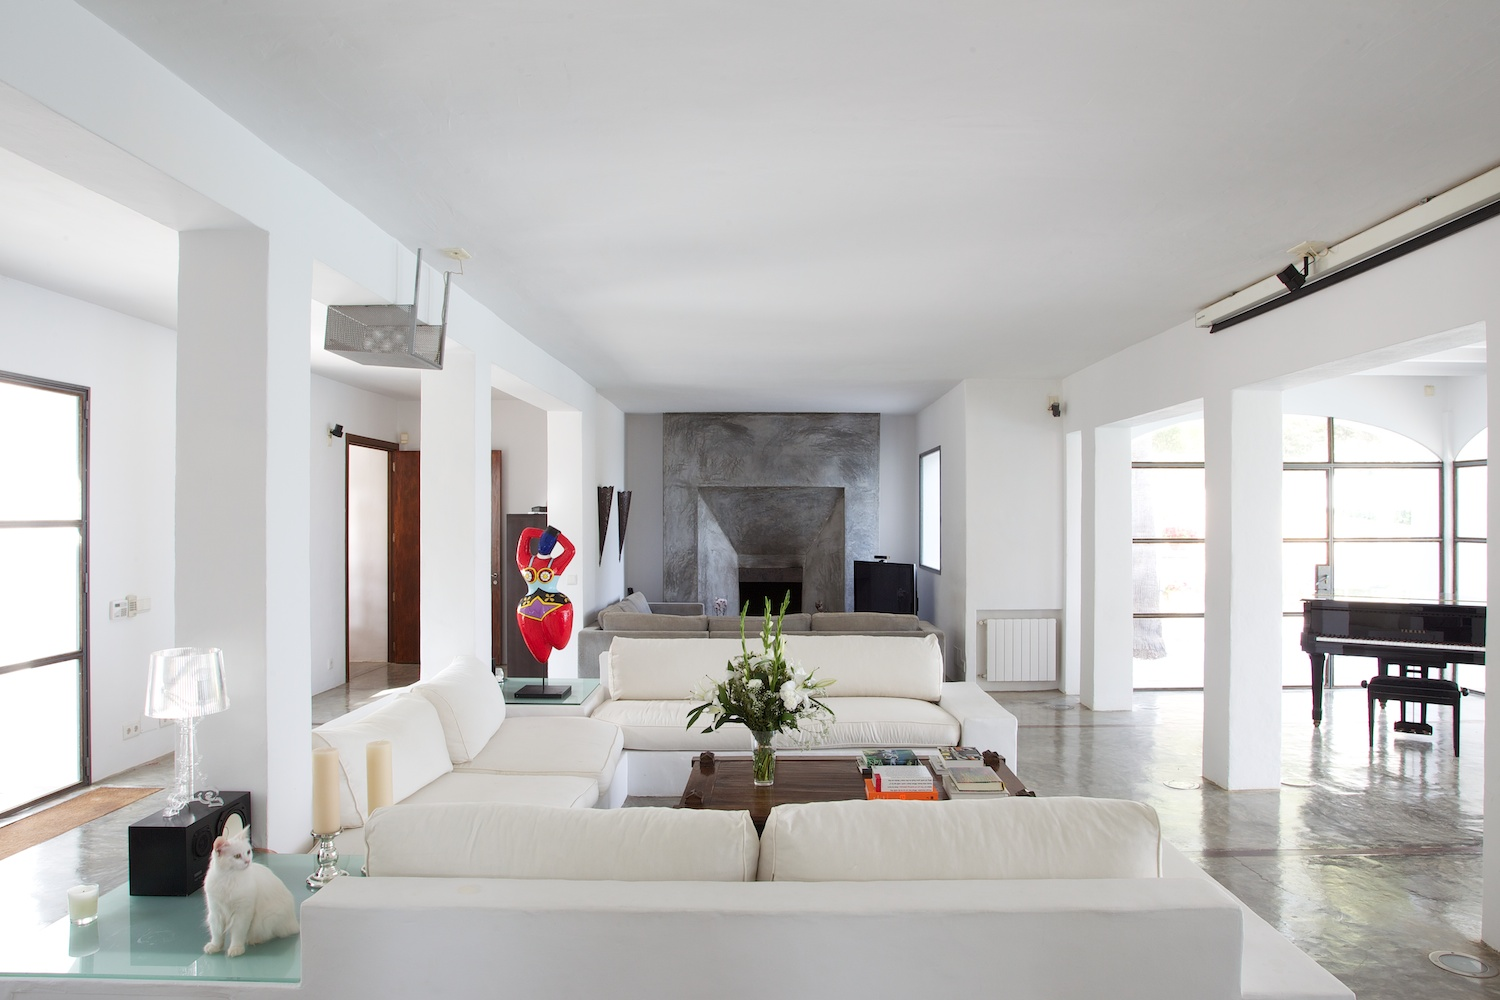 Ibiza luxury villas for sale over 3 million euros above 3 for Beautiful villas pics